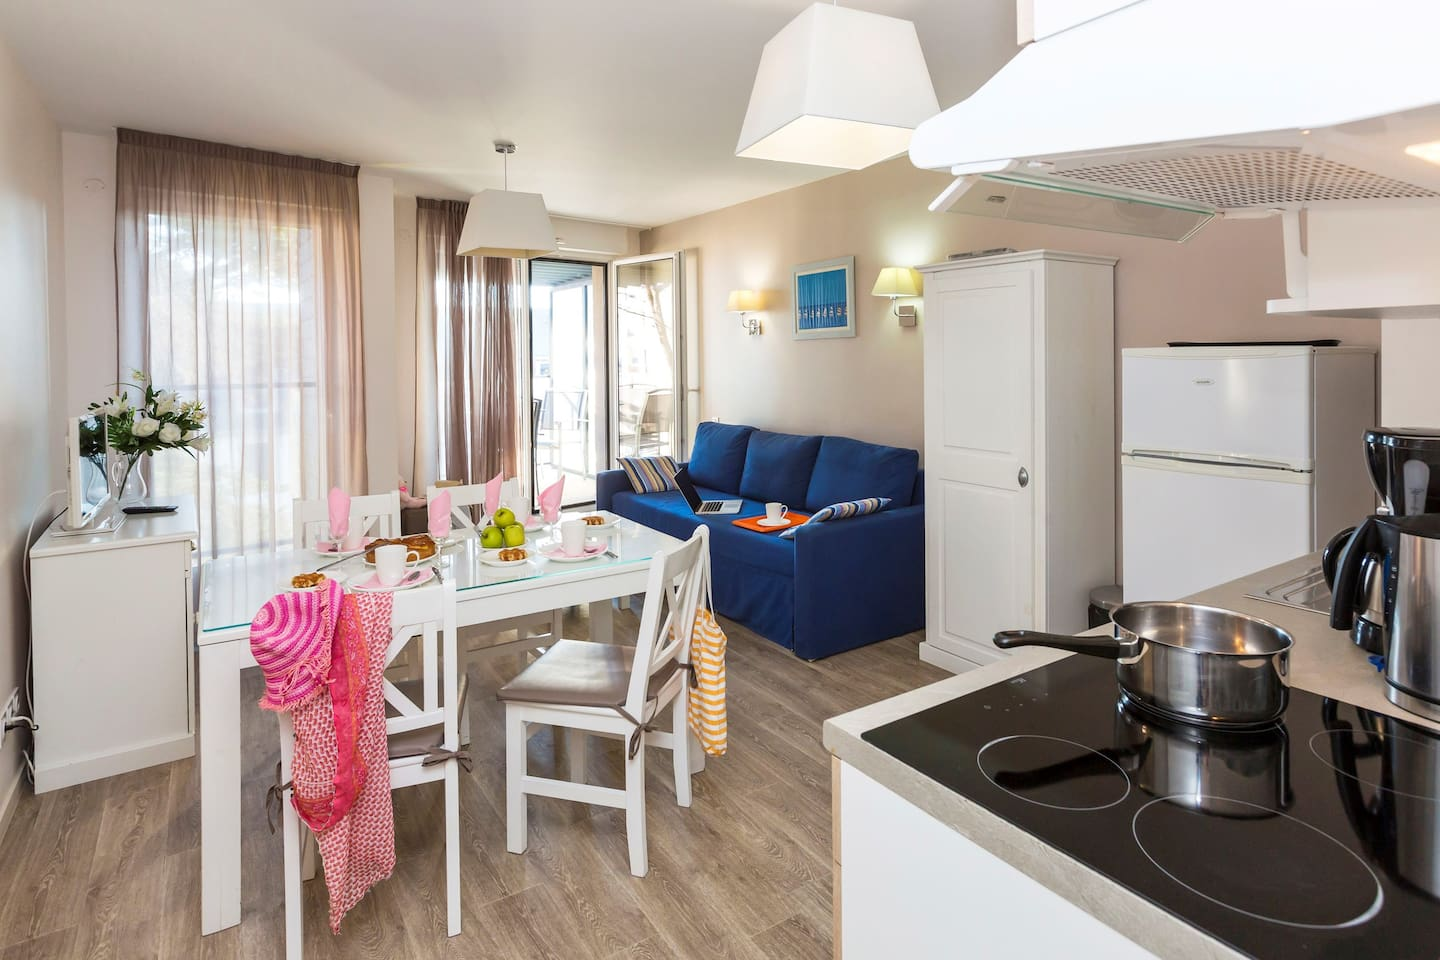 Welcome to our cozy and open apartment in Pornichet.